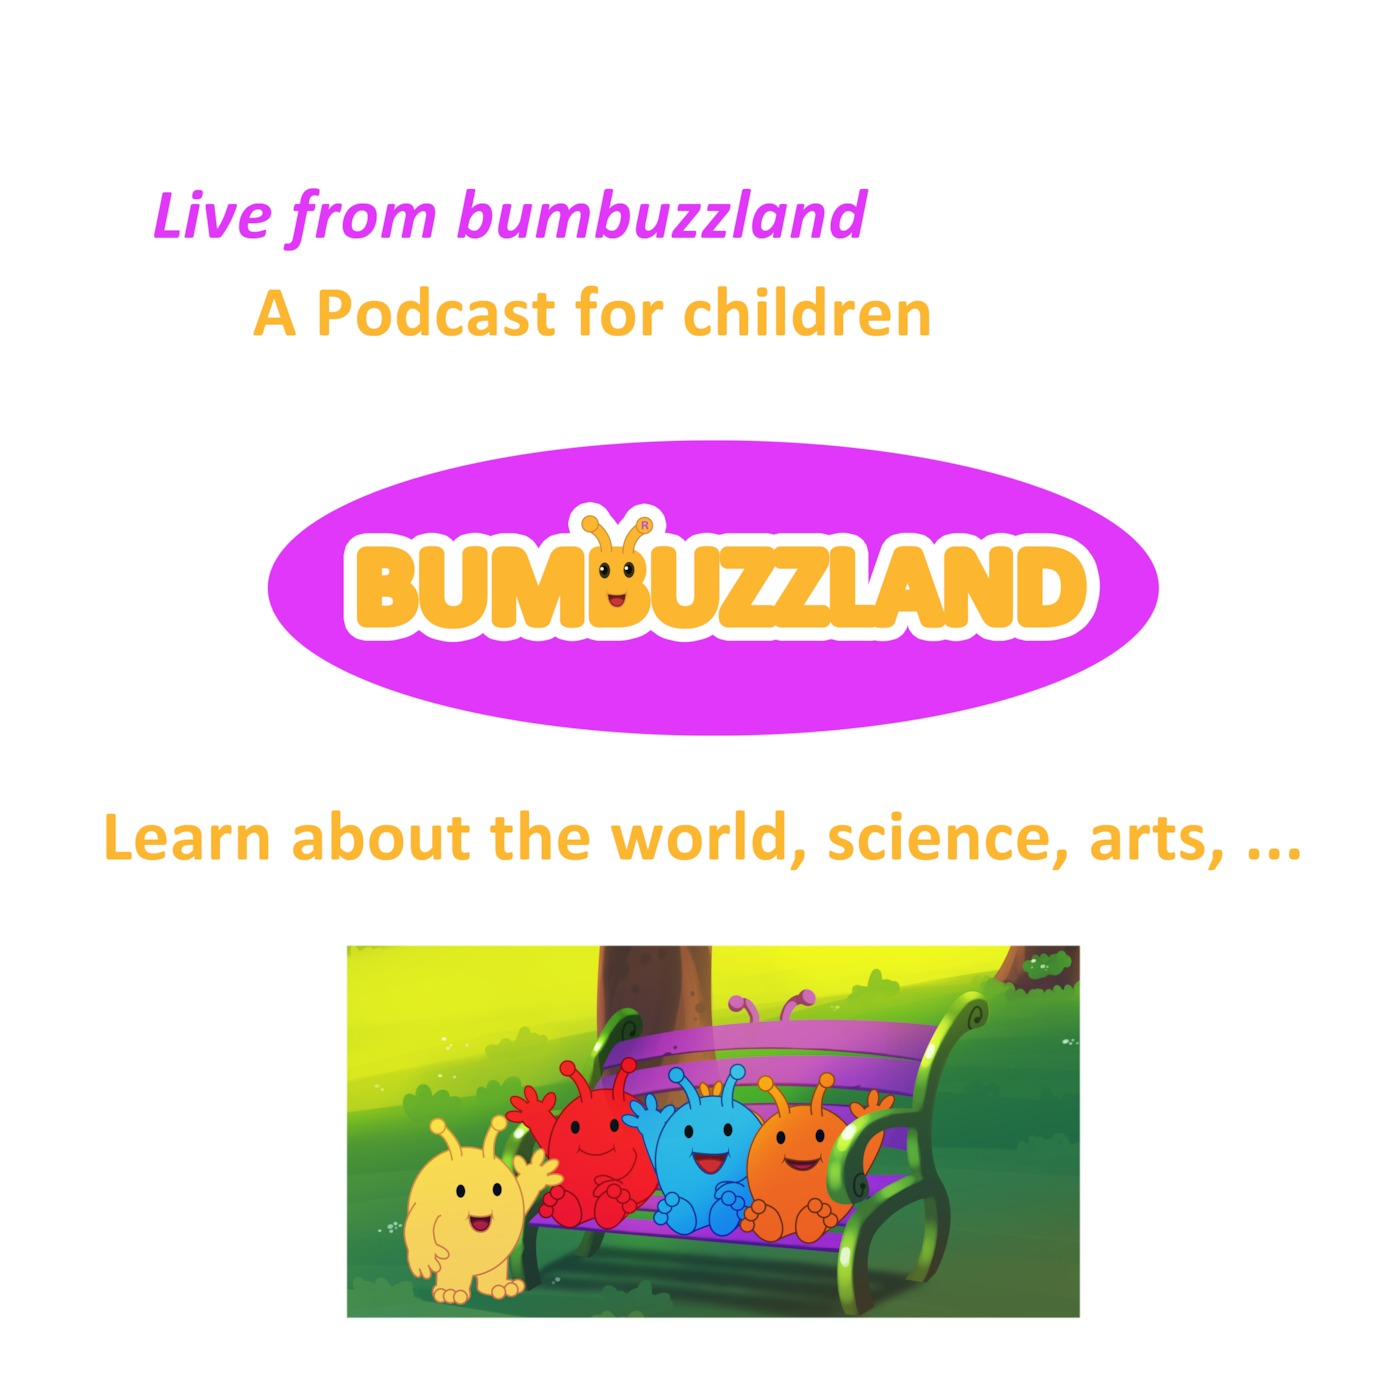 Live from Bumbuzzland